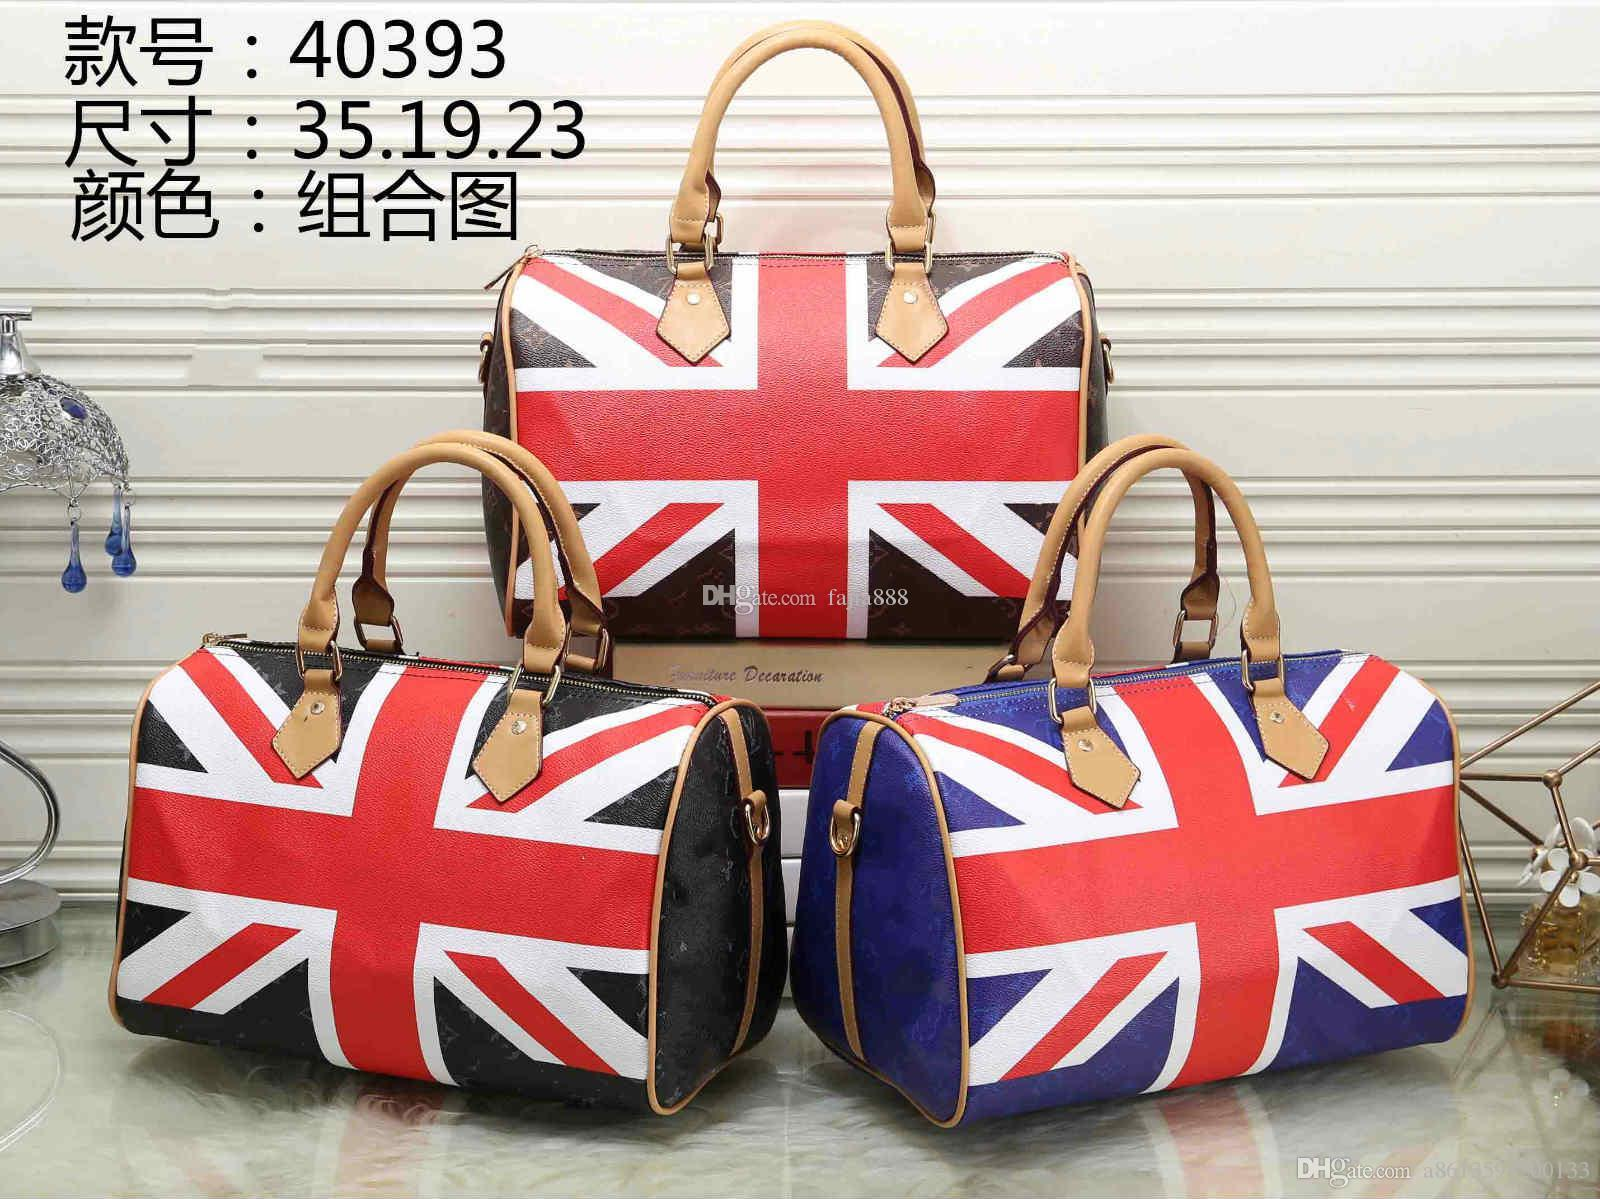 28b8812a20ea Shoulder Bags Handbag Designer Fashion Women Boston Luxury Handbags Ladies  Crossbody Bag Tote Bags PU Leather Manual Unique Popular Bags